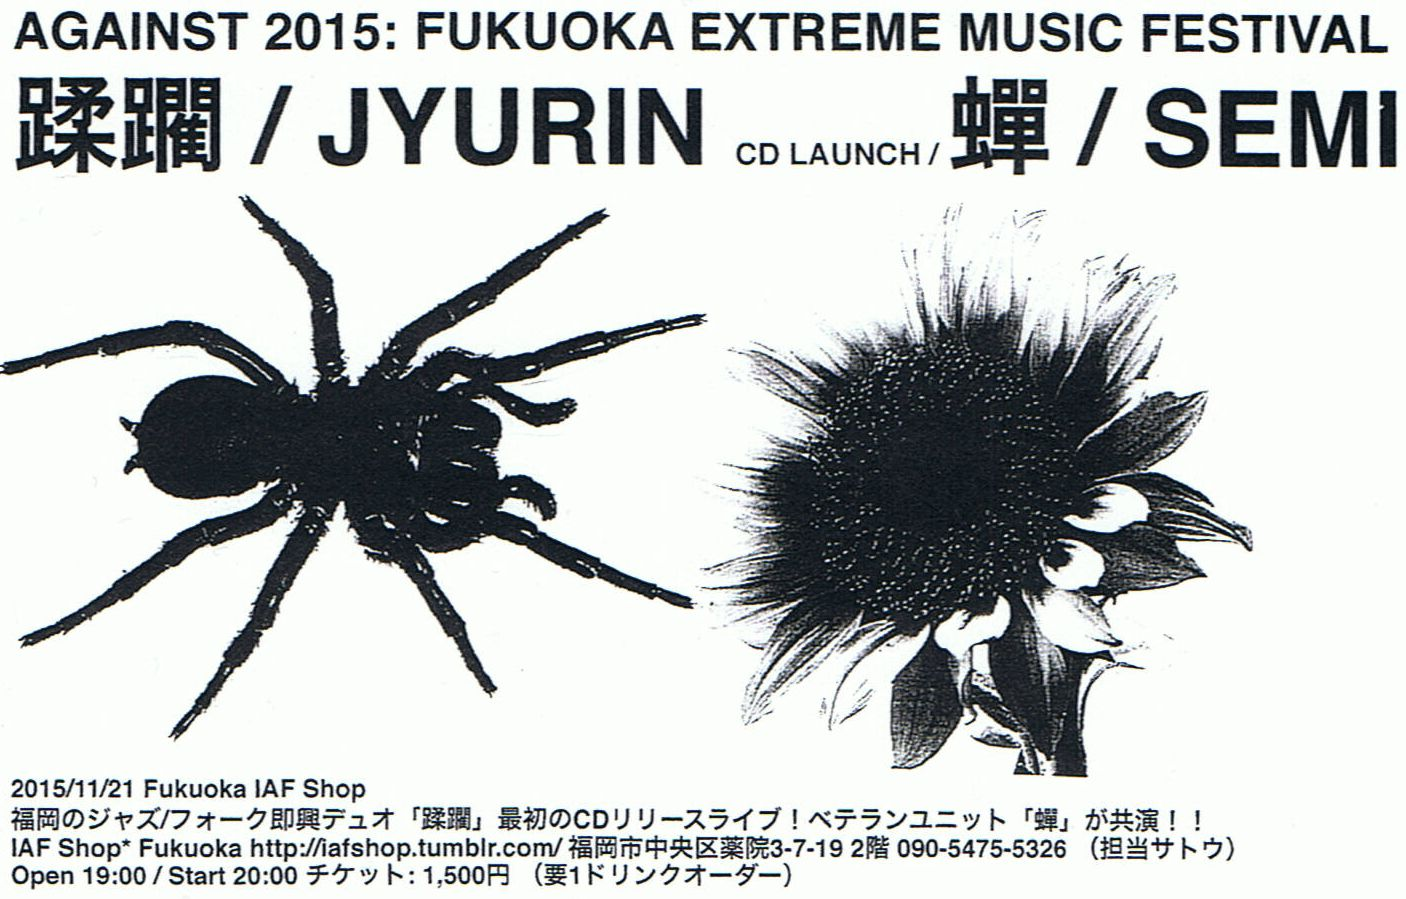 「AGAINST 2015: FUKUOKA EXTREME MUSIC FESTIVAL」 蹂躙/蟬_f0190988_23323079.jpg